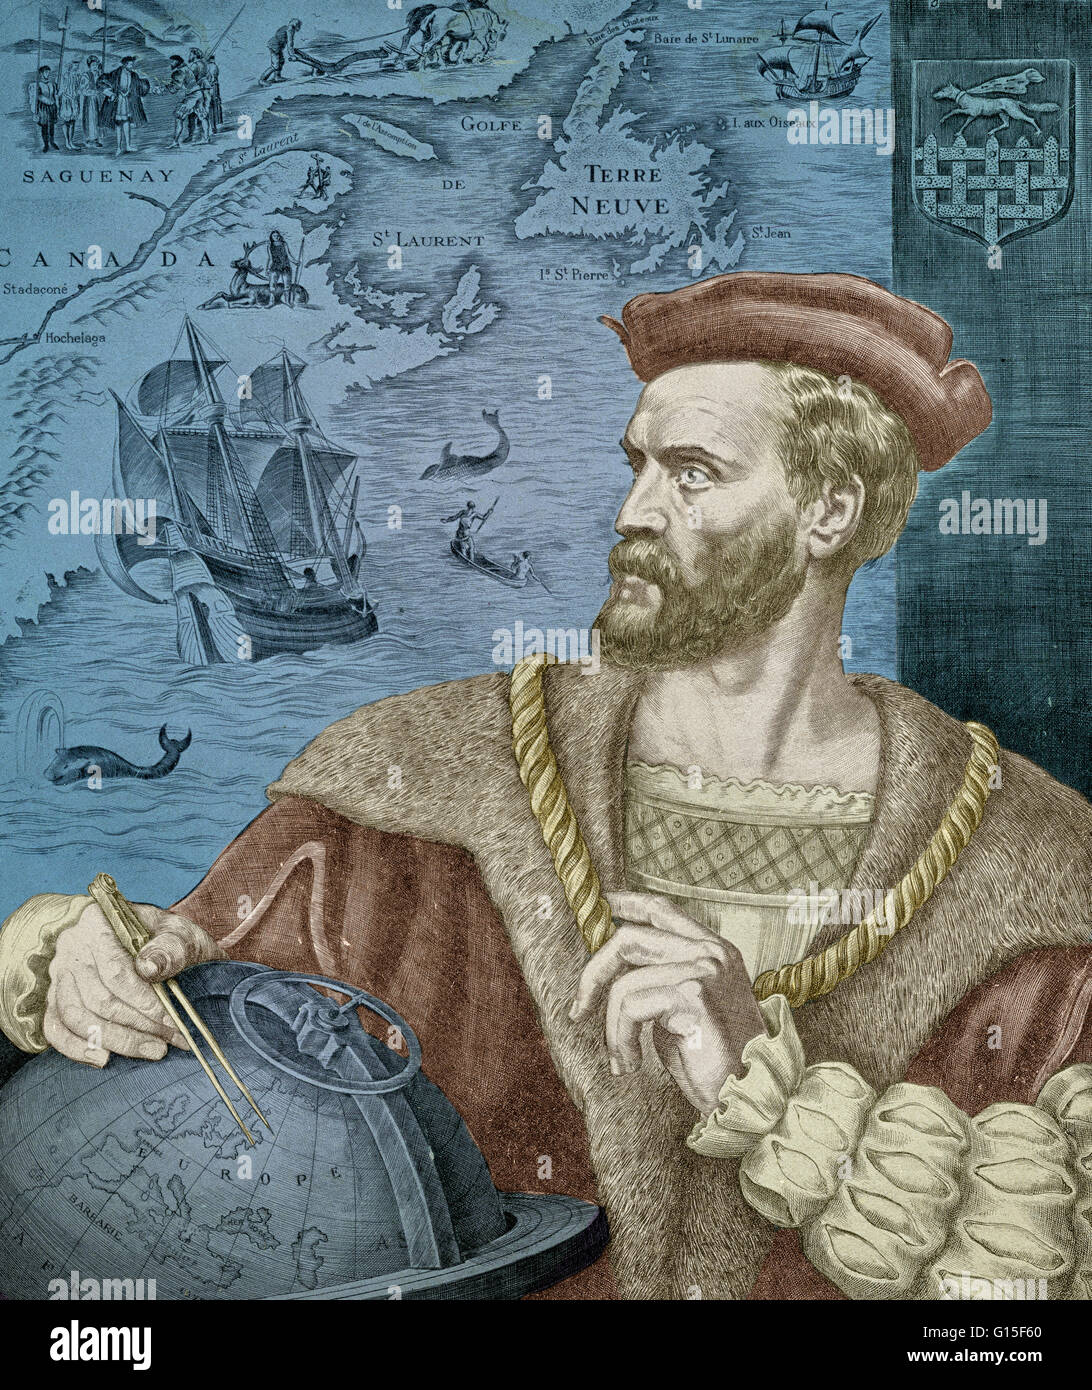 Jacques Cartier (1491-1557) was a French explorer who claimed Canada for  France. He was the first European to describe and map the Gulf of Saint  Lawrence ...